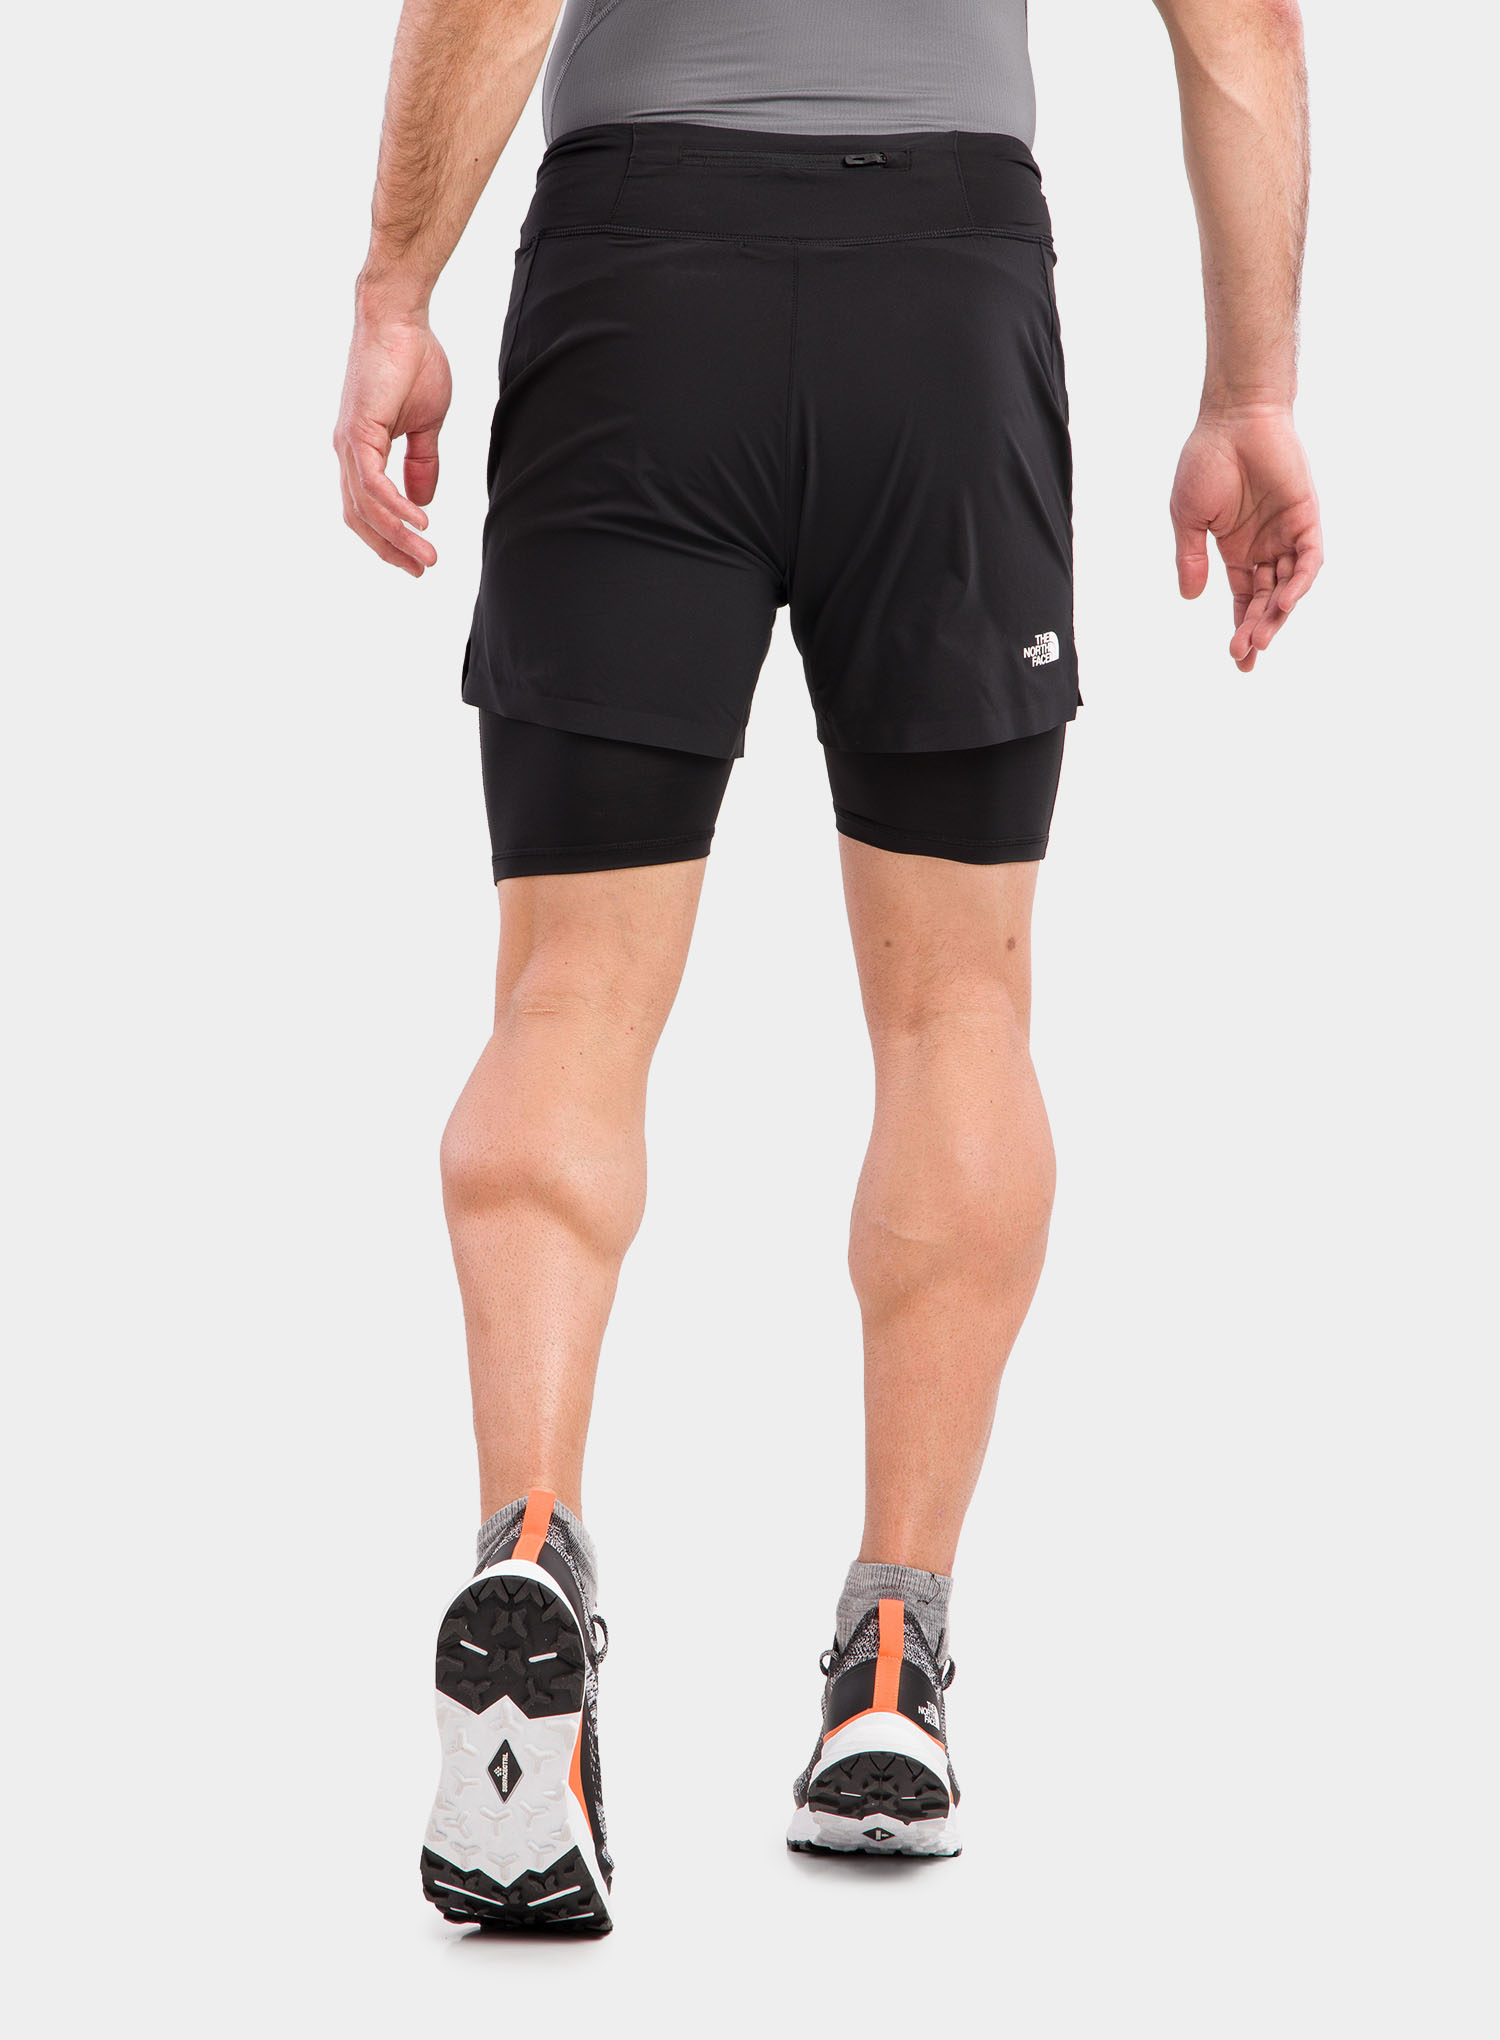 Spodenki The North Face Circadian Comp Lined Short - black - zdjęcie nr. 4